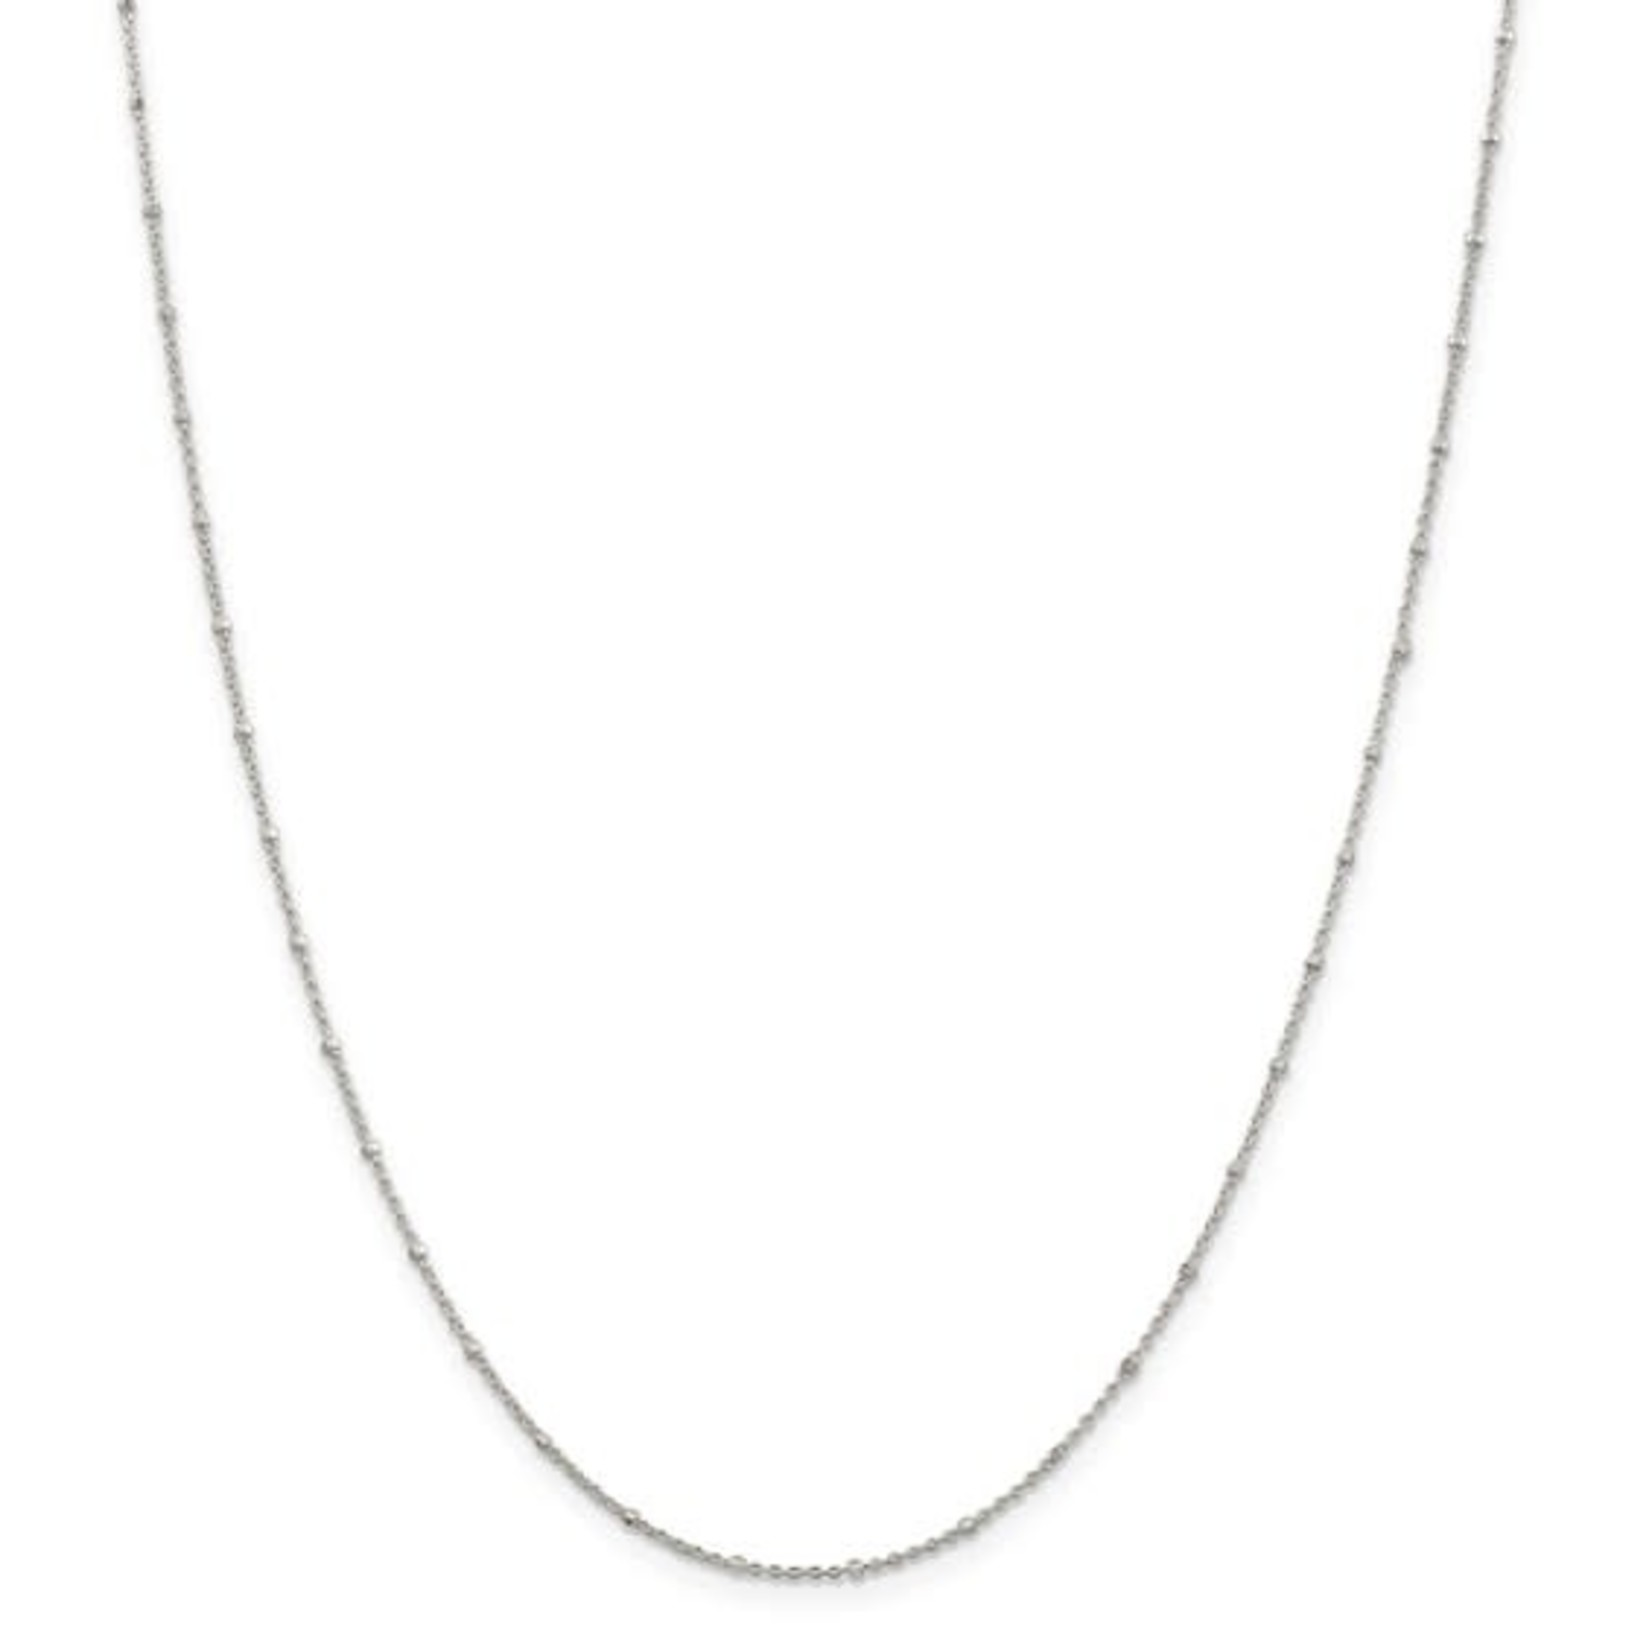 This Is Life Sterling Silver 1.25mm Rolo with Beads Chain